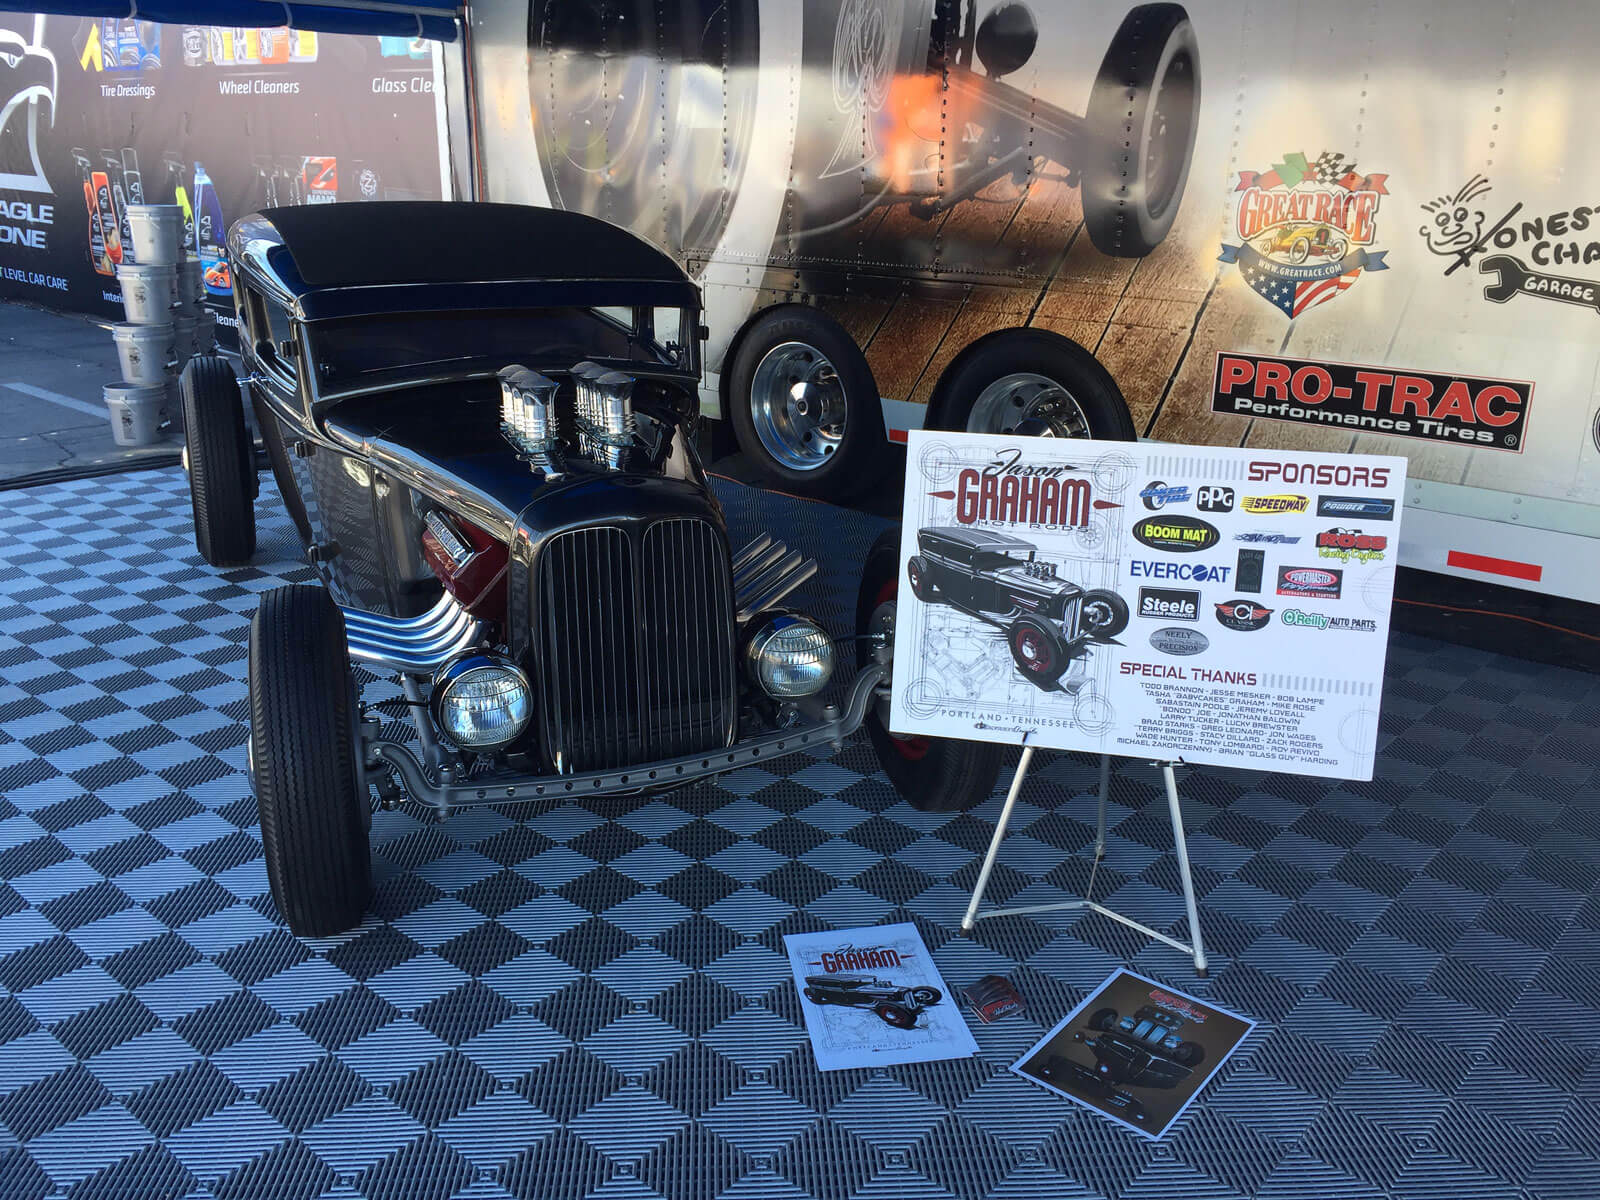 Hot rod display with Free-Flow tiles